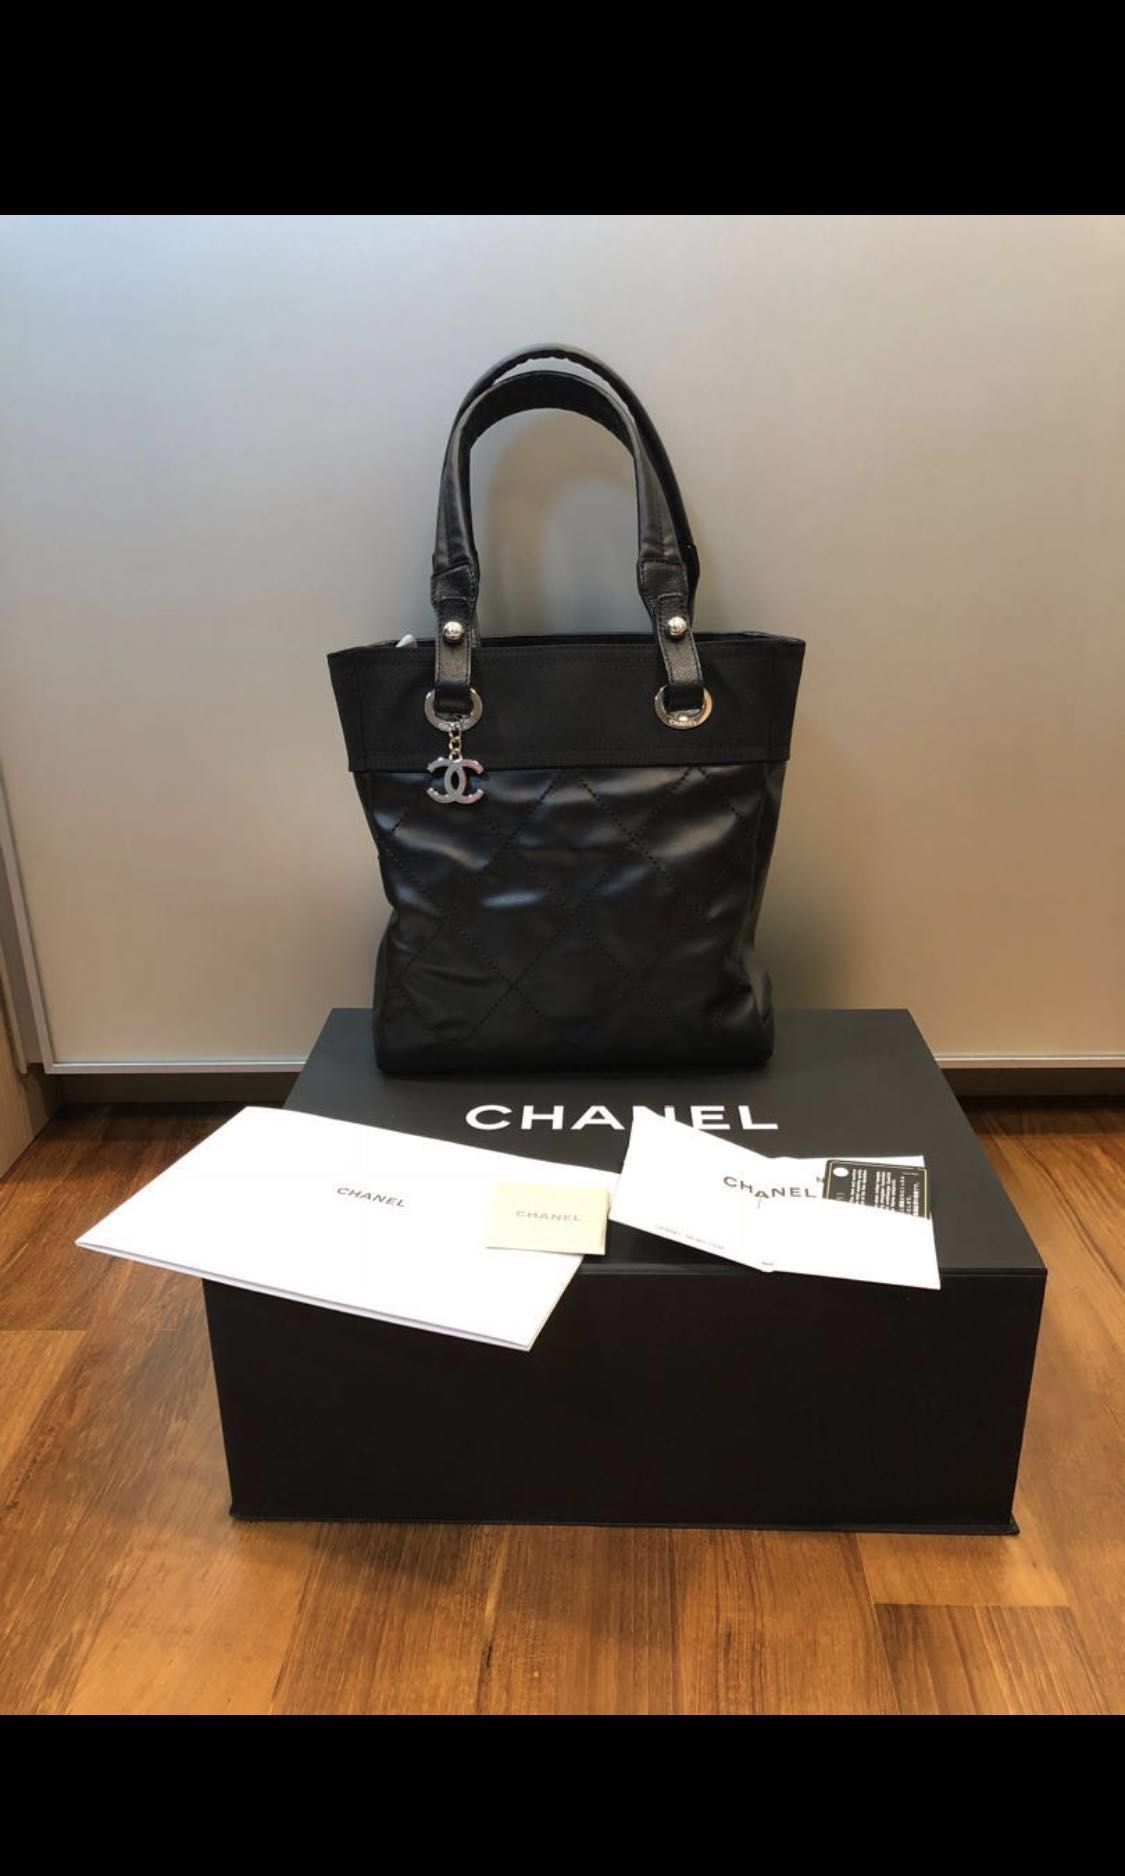 0372ea984ec4 🔥Price Reduced🔥AUTHENTIC CHANEL PARIS BIARRITZ SMALL TOTE IN BLACK ...